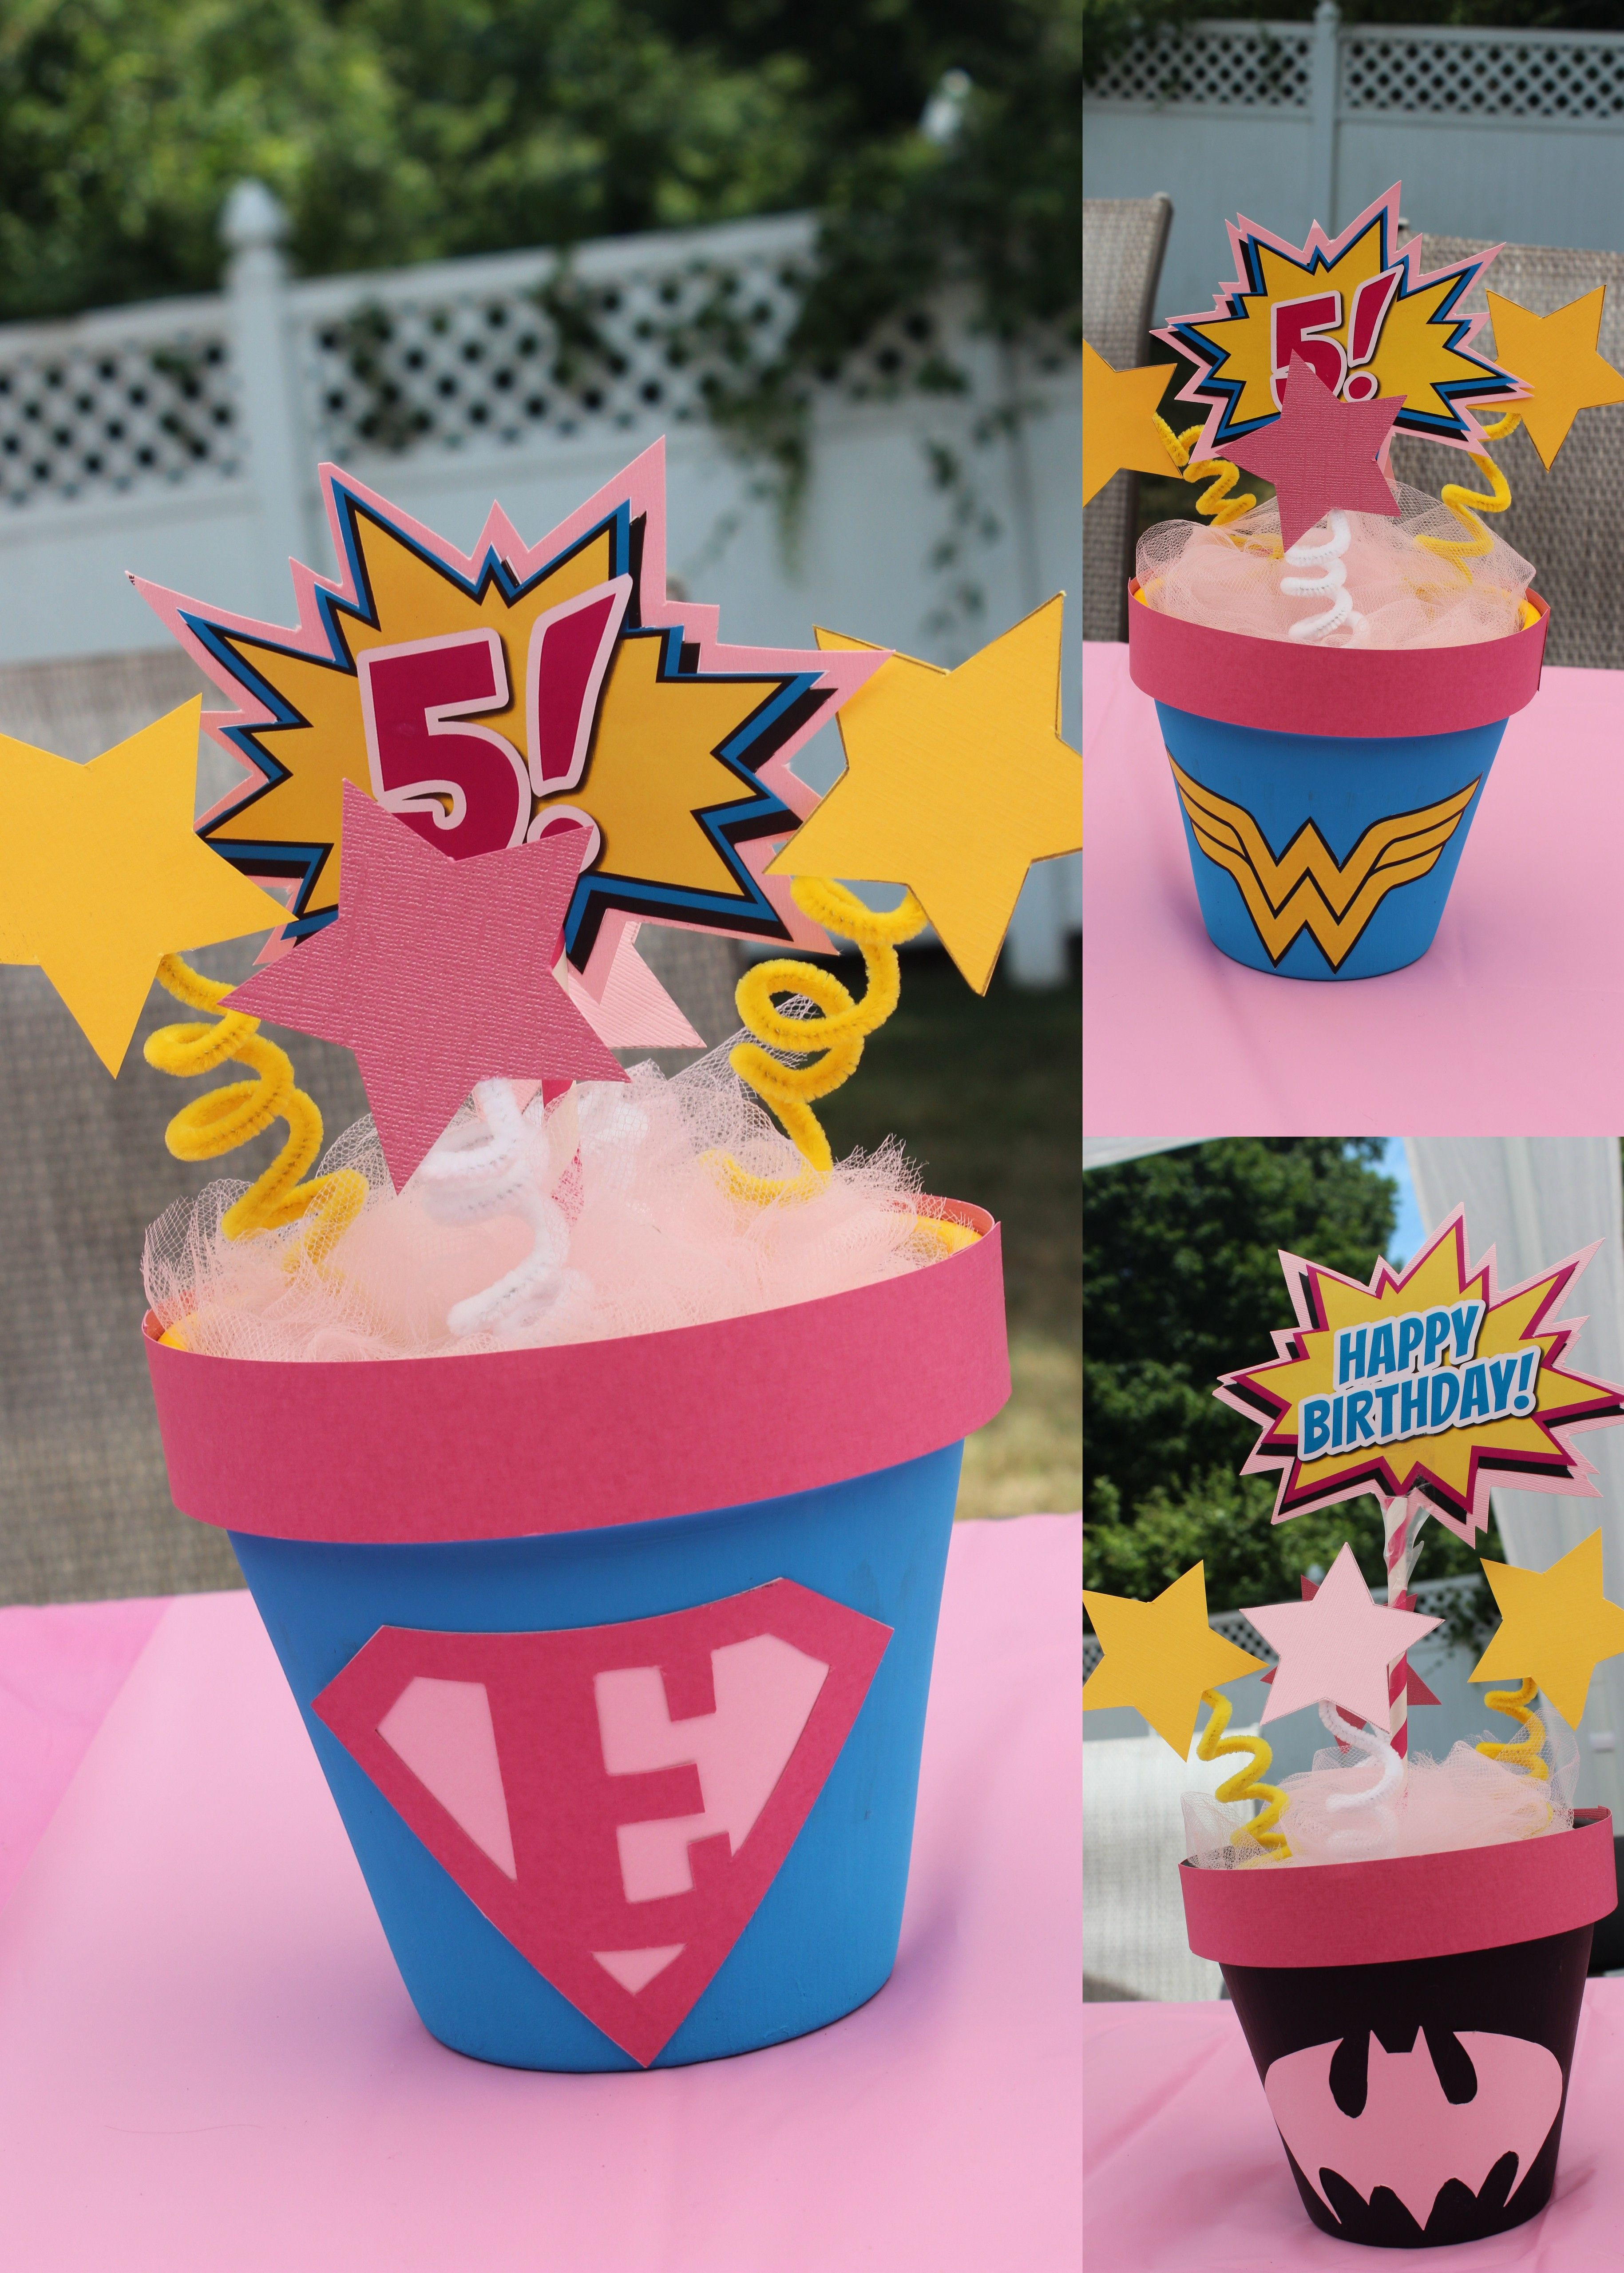 Emma 39 s superhero girl birthday party diy table centerpieces painted pots with cutout logos and - Image de super hero fille ...